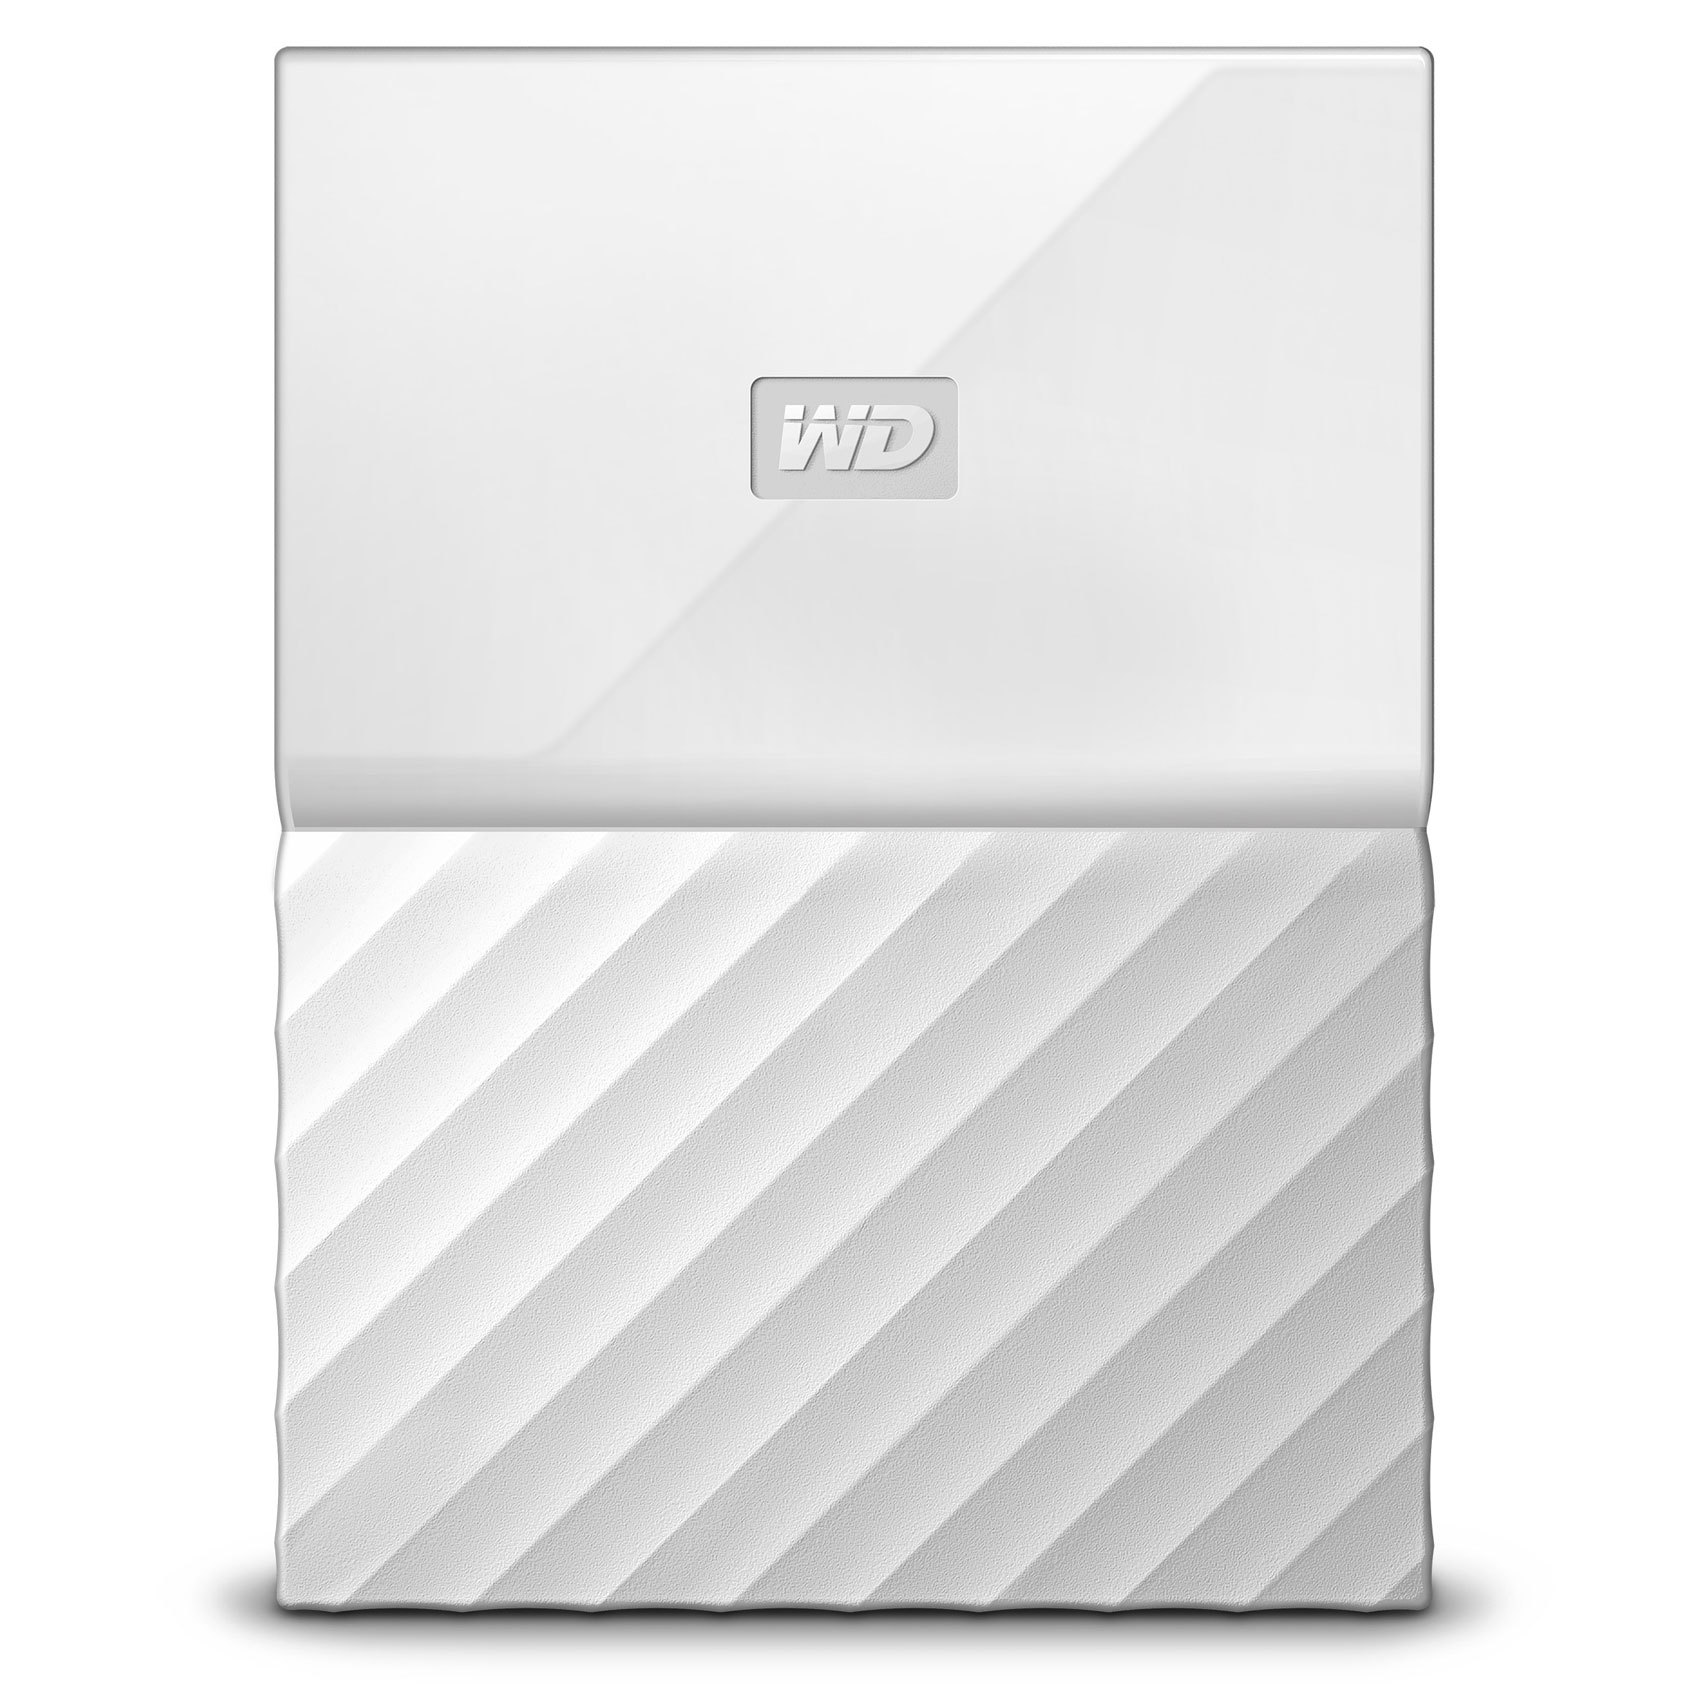 WD HDD 2TB PASSPORT WH WW